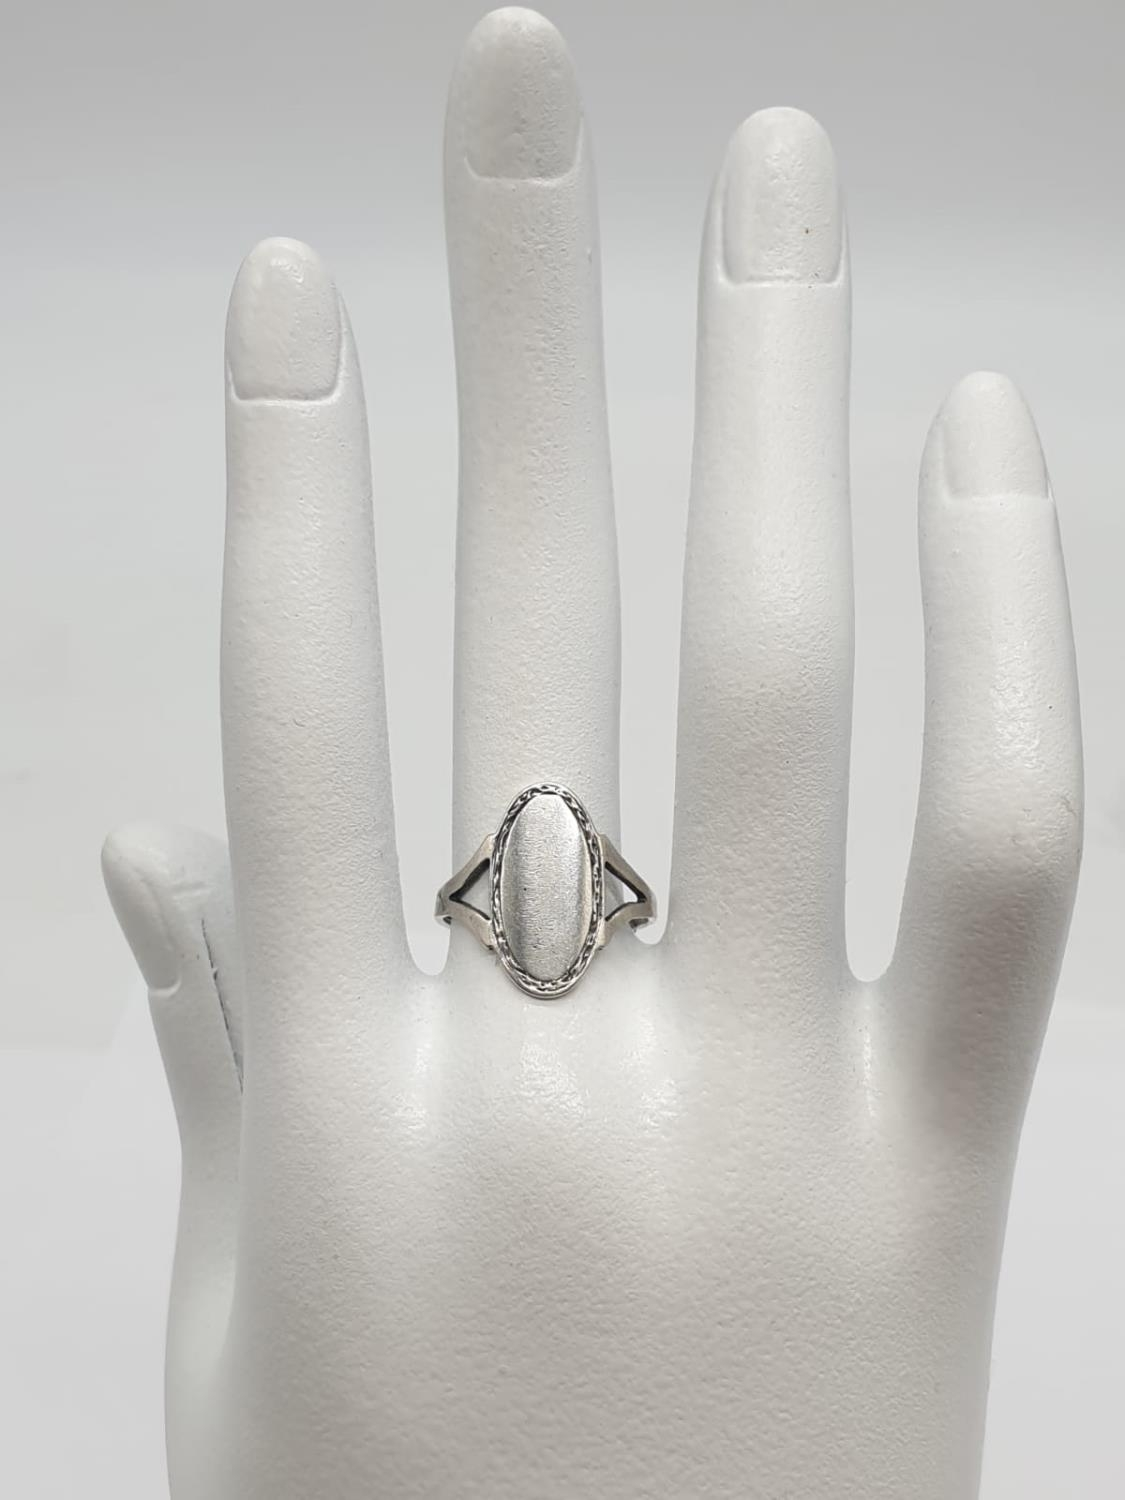 L&W Silver Vintage RING. 2.2g Size M. - Image 5 of 5